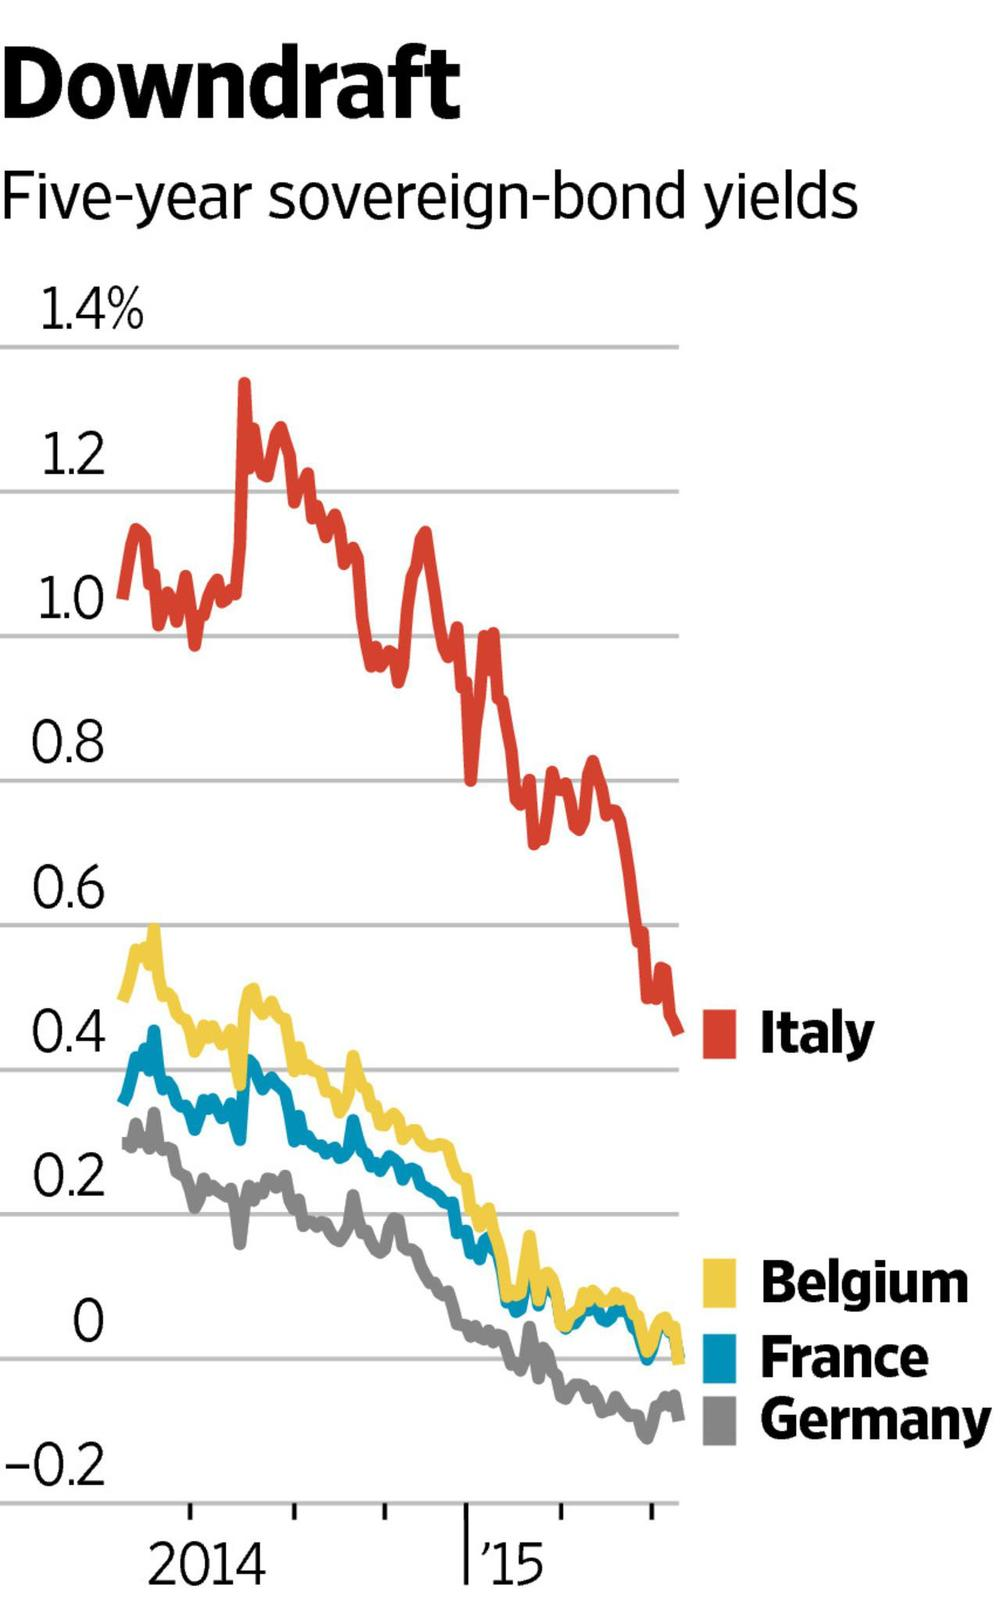 It's now much cheaper to lend the Italian government Euros for 5 years than to lend the pounds to the UK government Pounds, or dollars to the US government for a 5-year period!    Insanity is indeed an understatement. This proves how much power central banks really wield